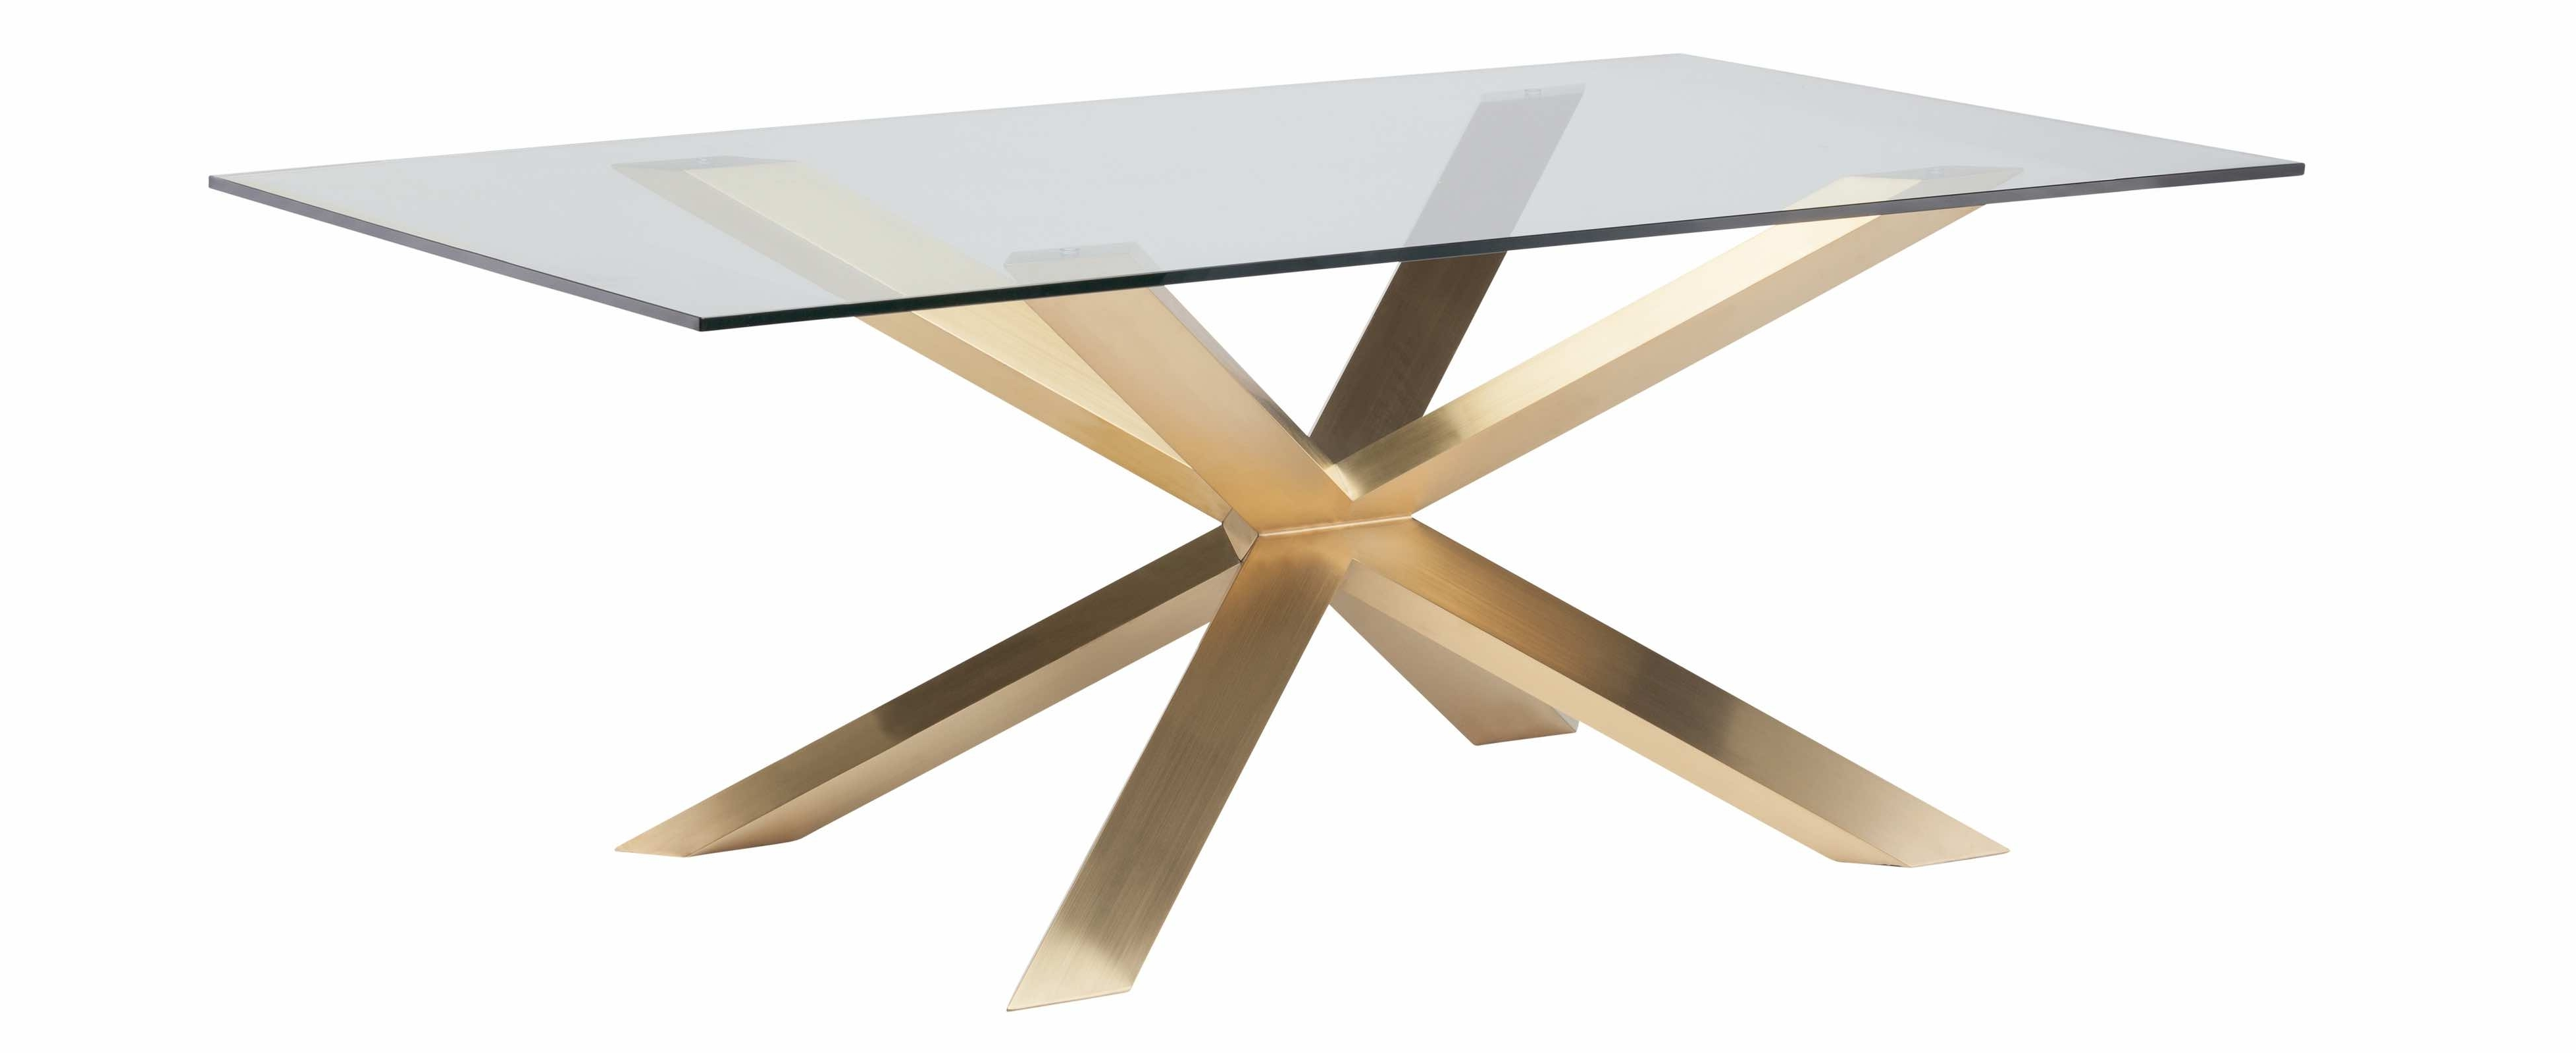 2018 Couture 78 Inch Dining Table In Brushed Gold Stainless Steel And Glass Intended For Brushed Metal Dining Tables (View 22 of 25)